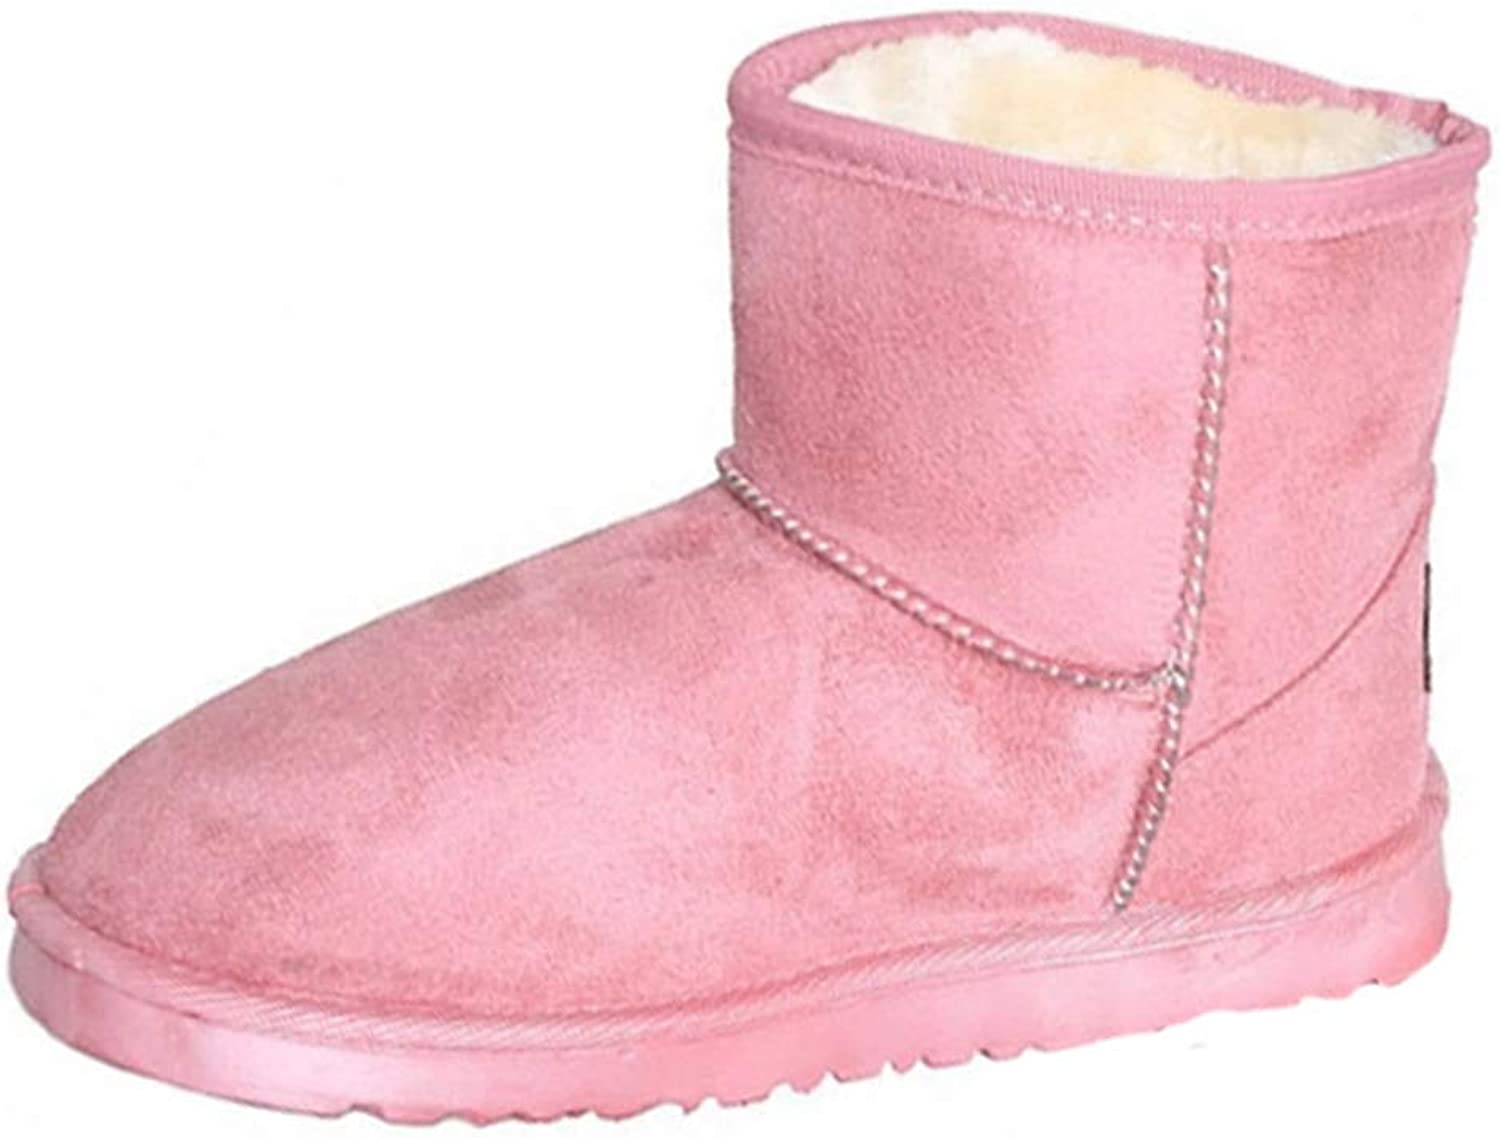 Women's Faux Suede Winter Warm Plush Lined Ankle Booties Slip On Platform Snow Boot